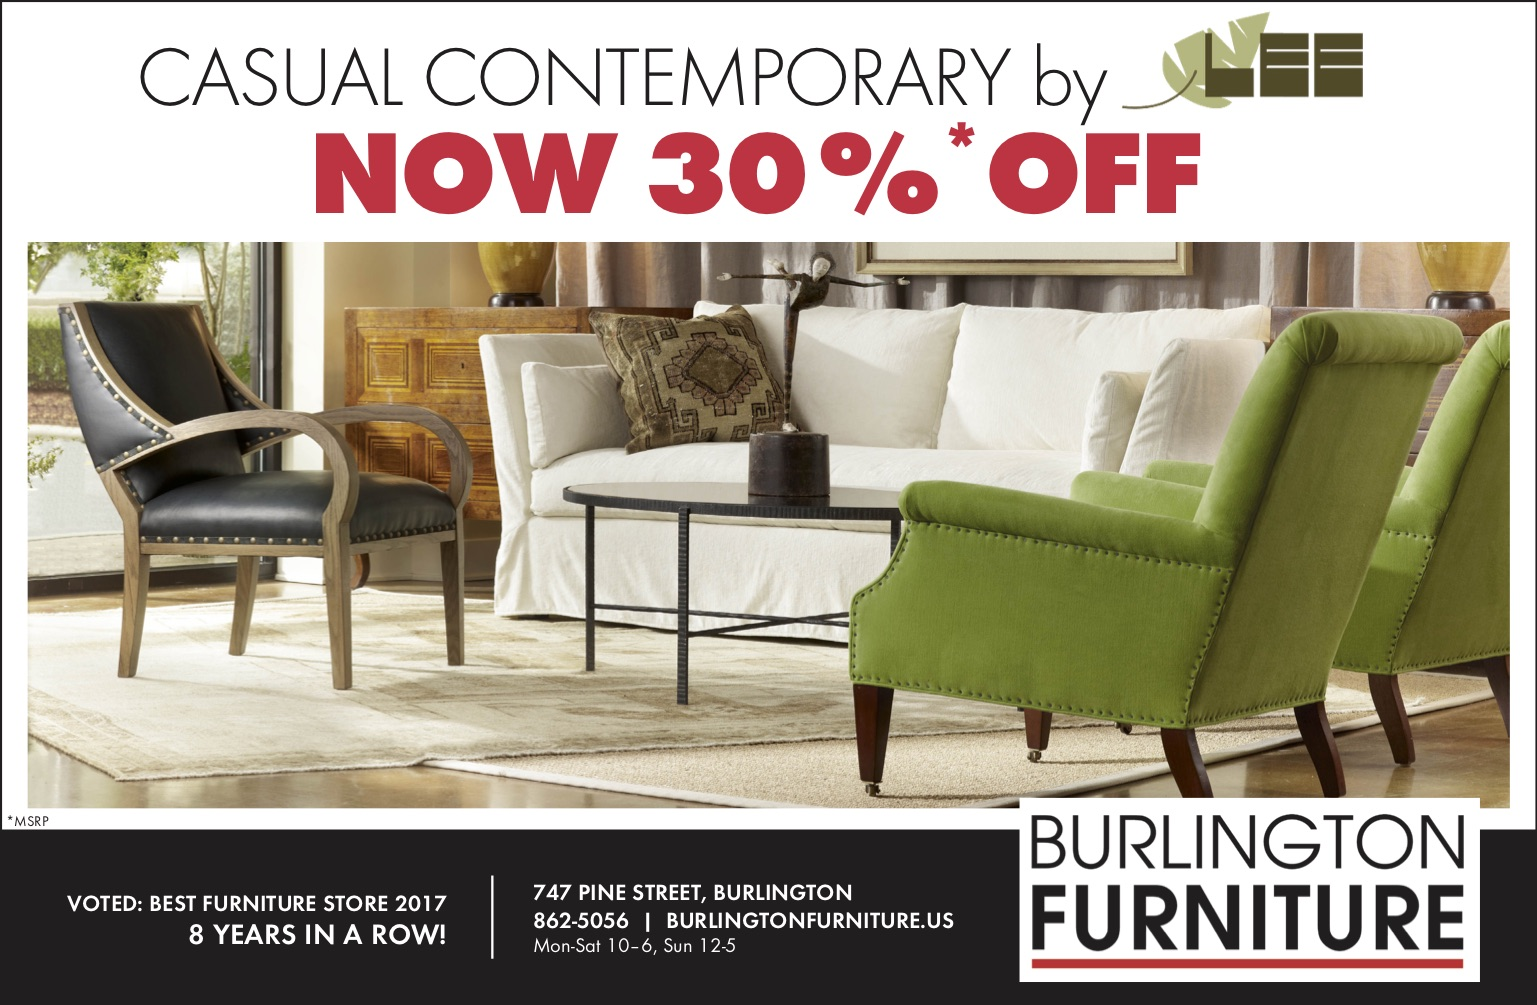 Casual Contemporary June Burlington Furniture